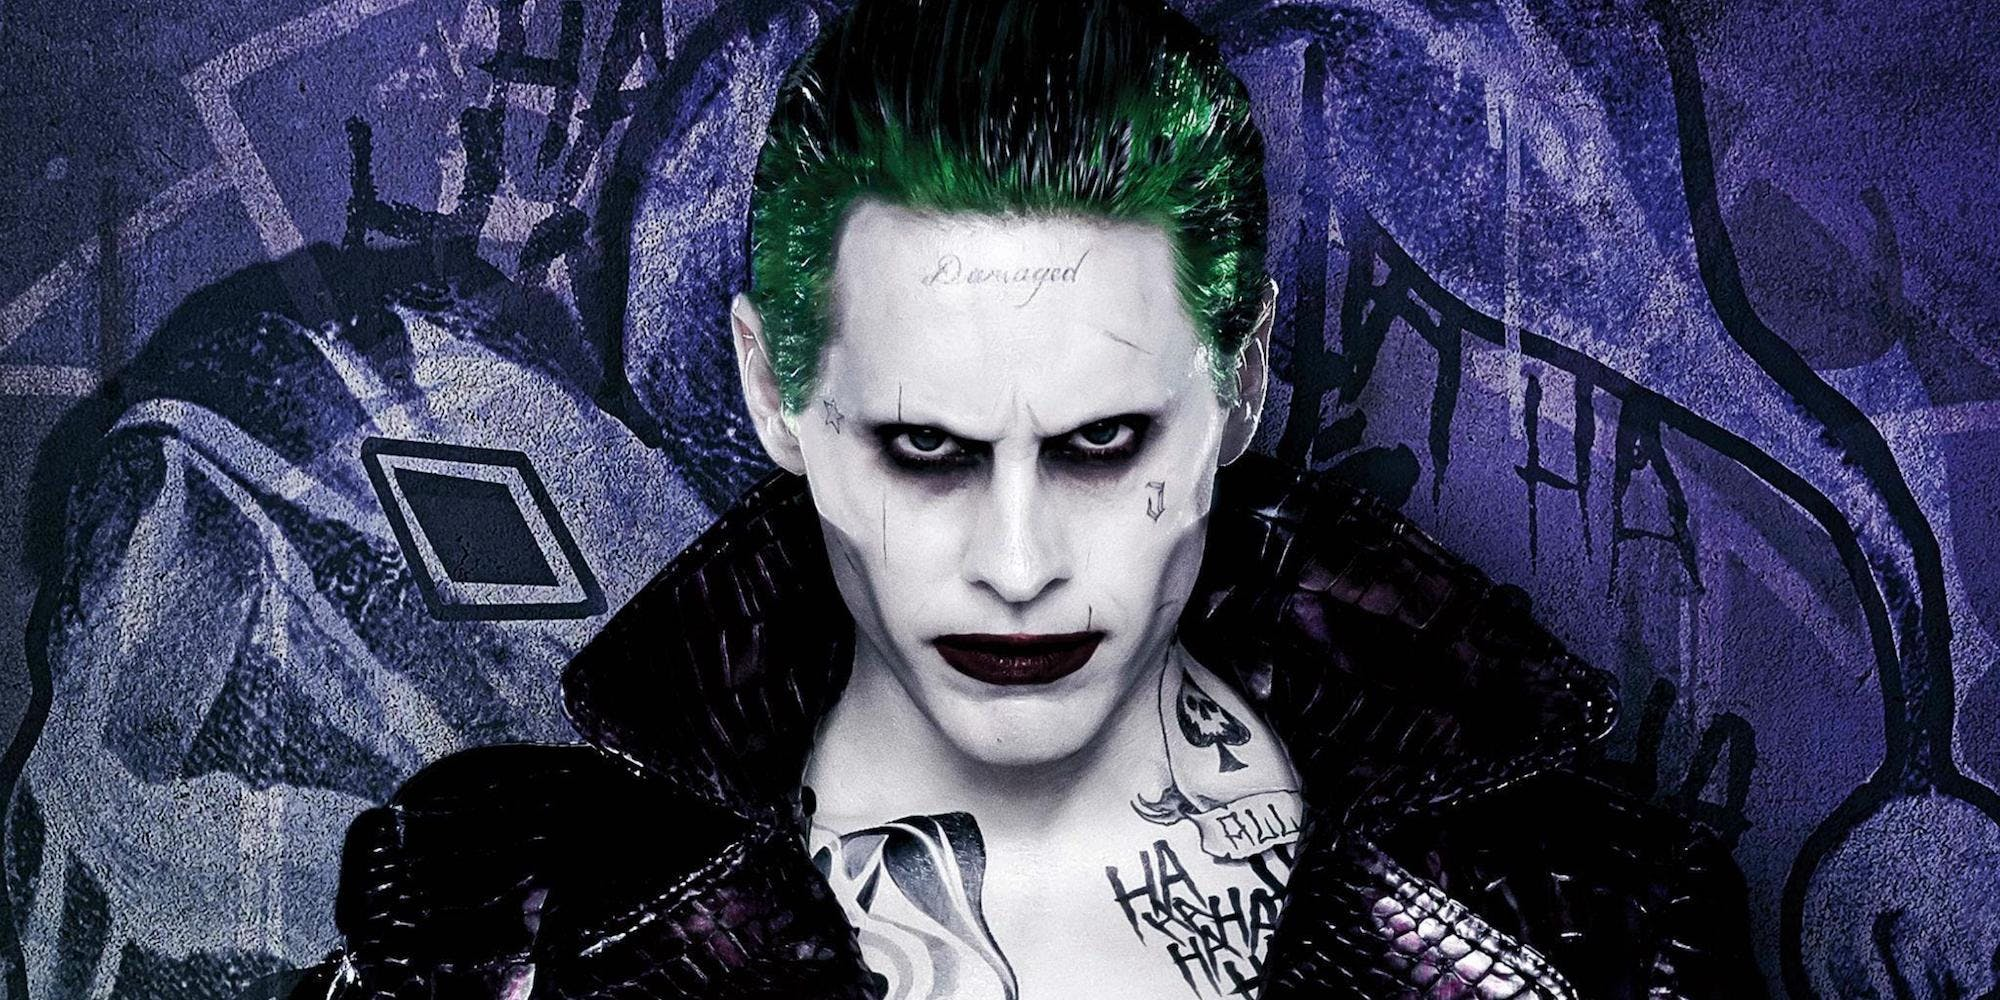 DC joker Movies